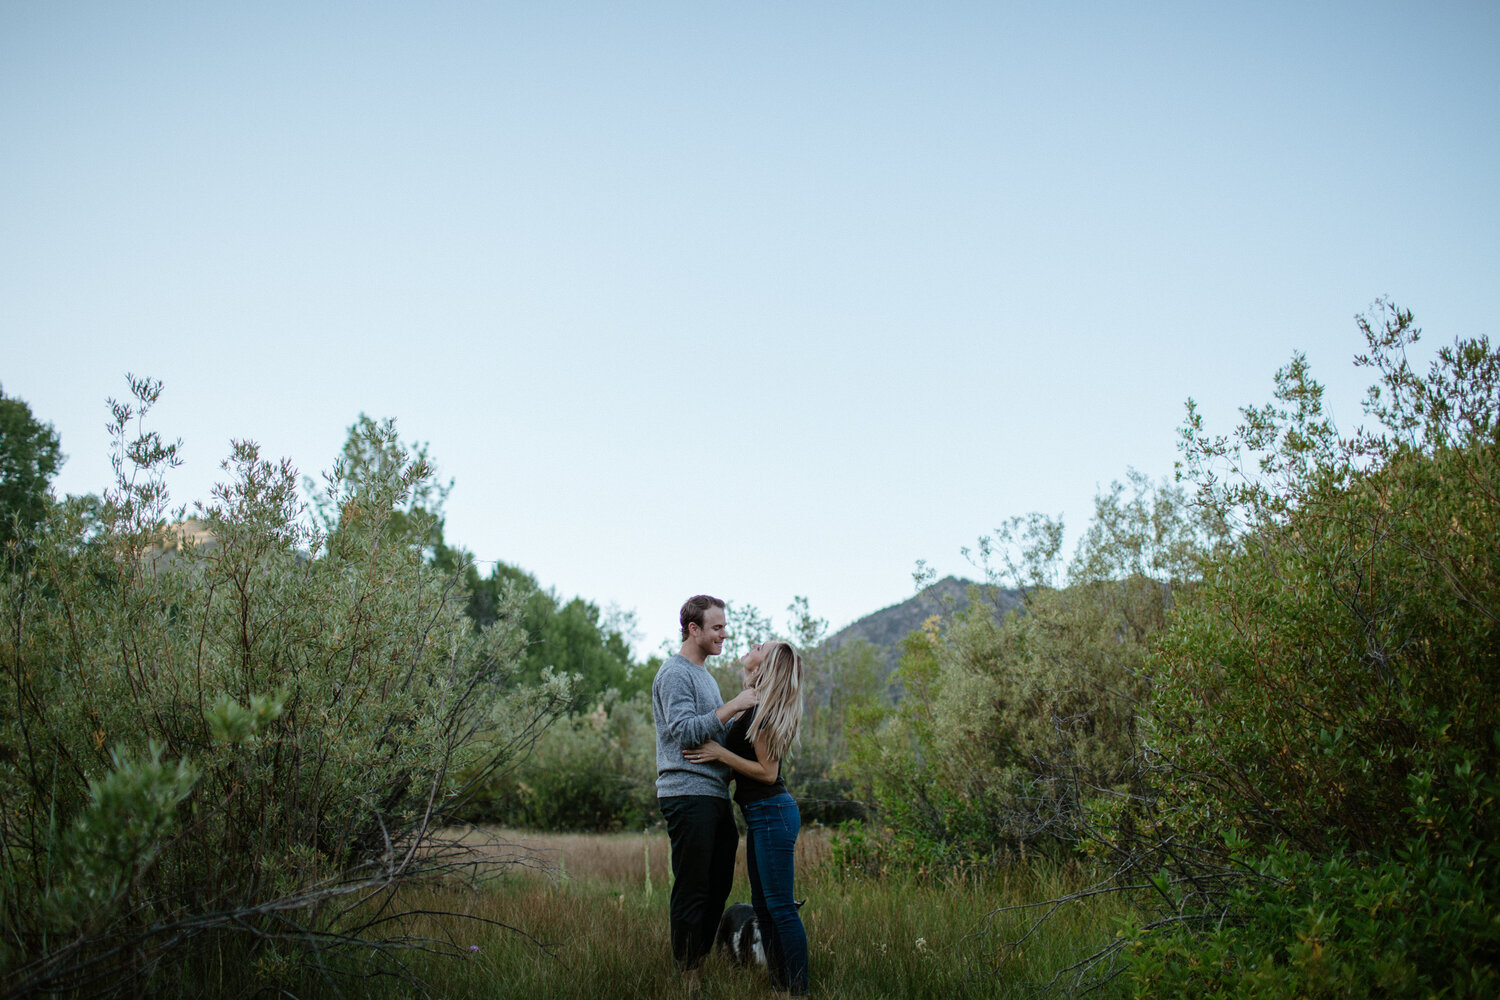 sun-valley-engagement-photos-christinemarie-59.jpg